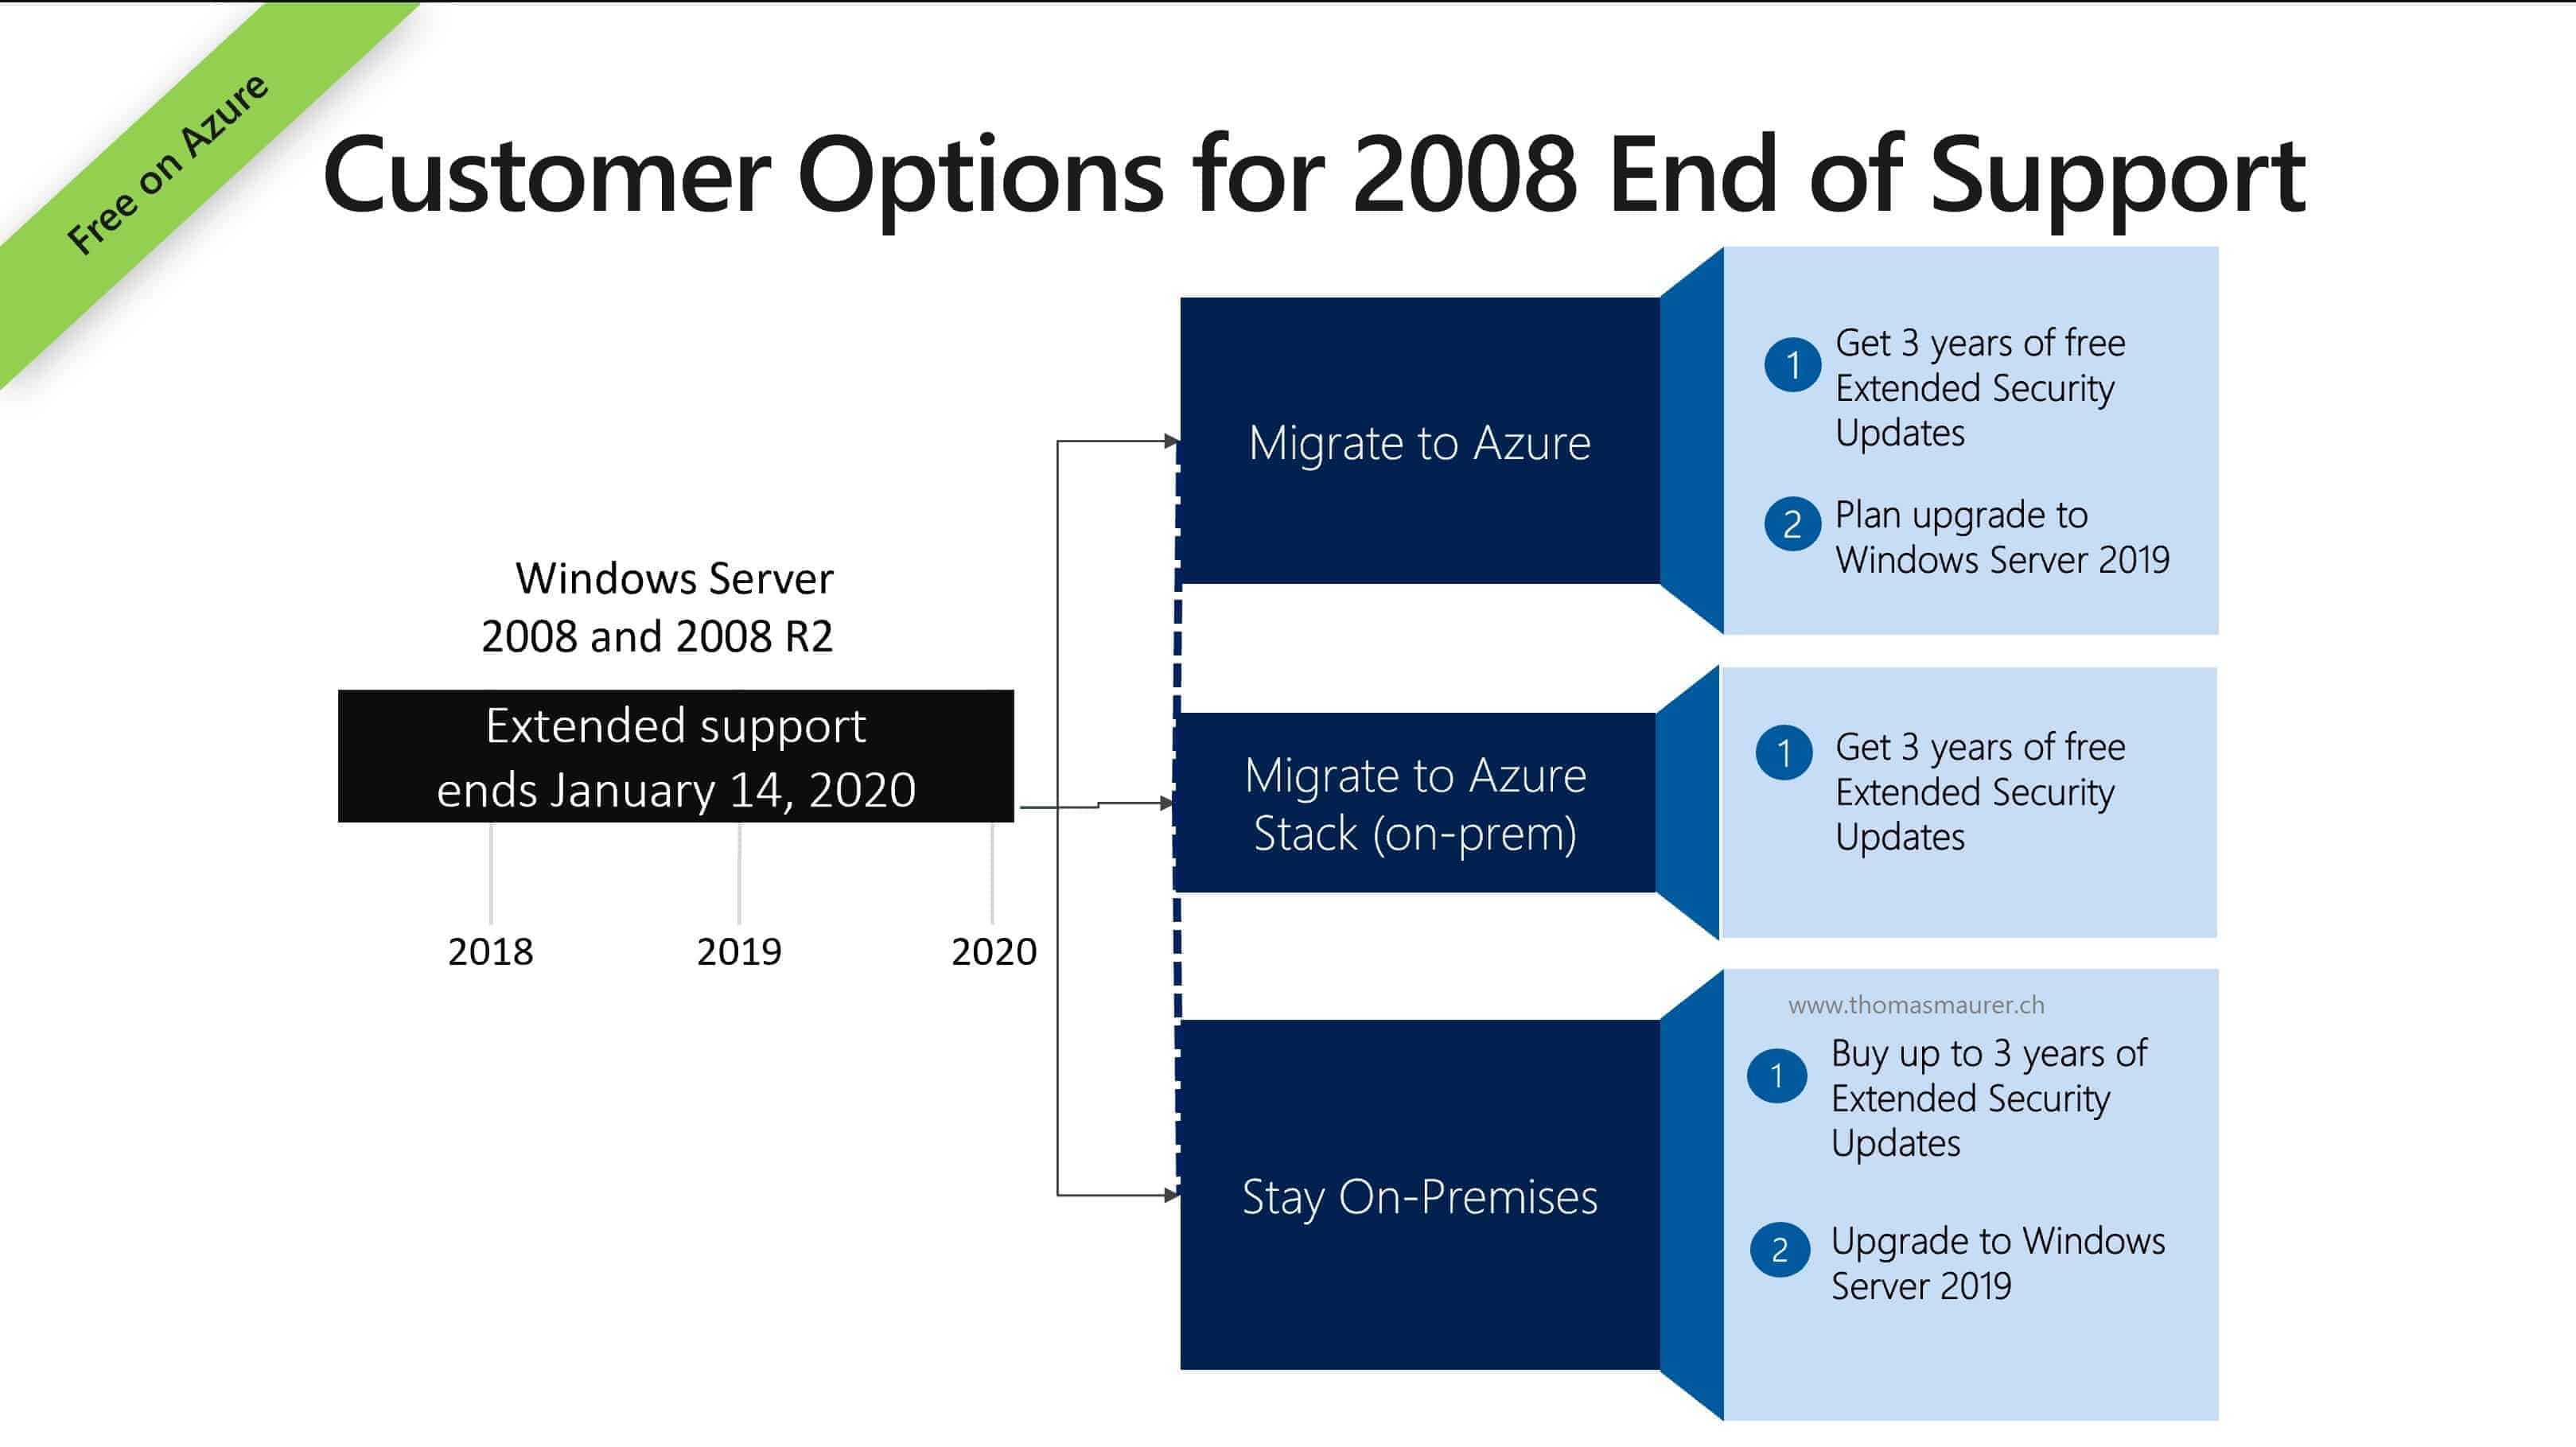 Extended Security Updates for SQL Server and Windows Server 2008 and 2008 R2 on Azure Stack